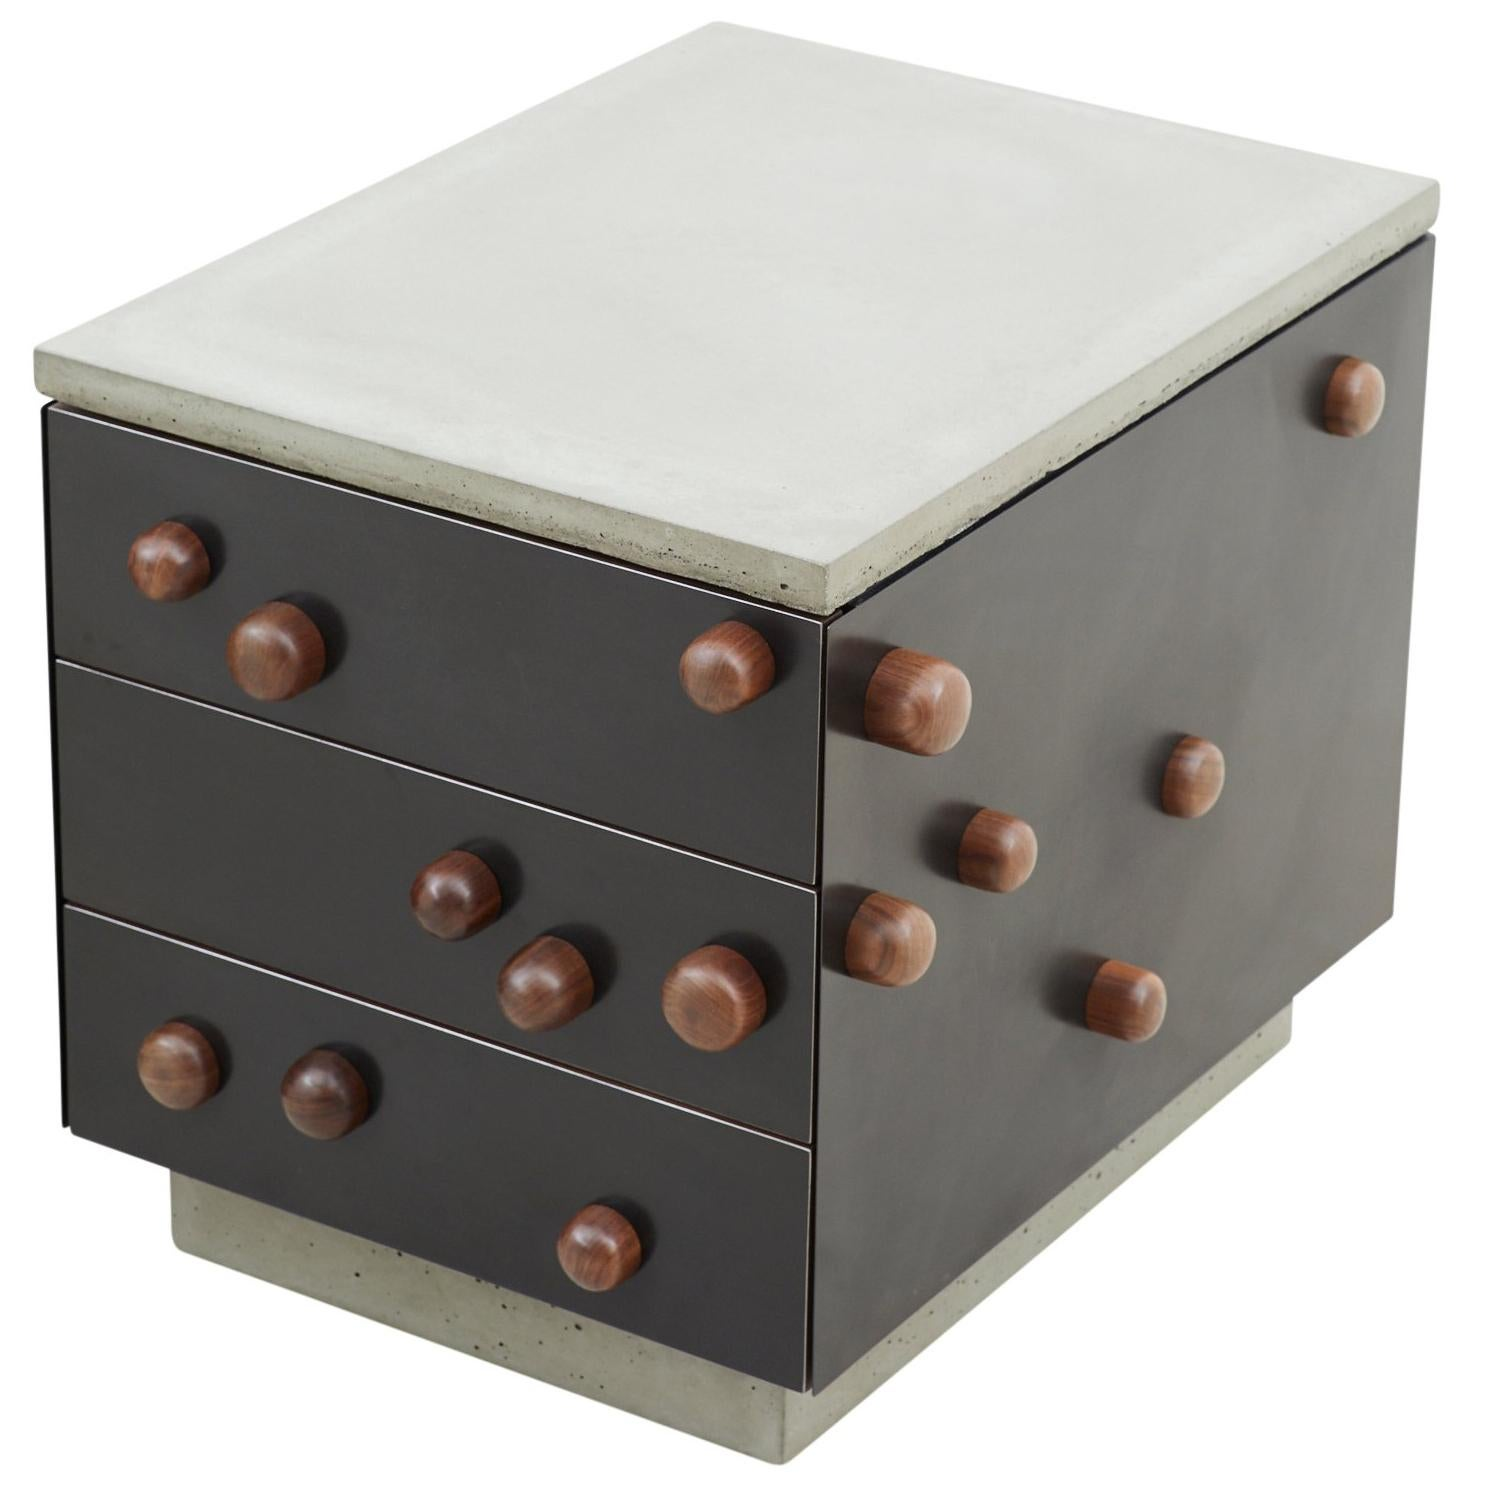 """Steel Veneer, Cast Conrete """"Protrusions End Table"""" with Drawers"""